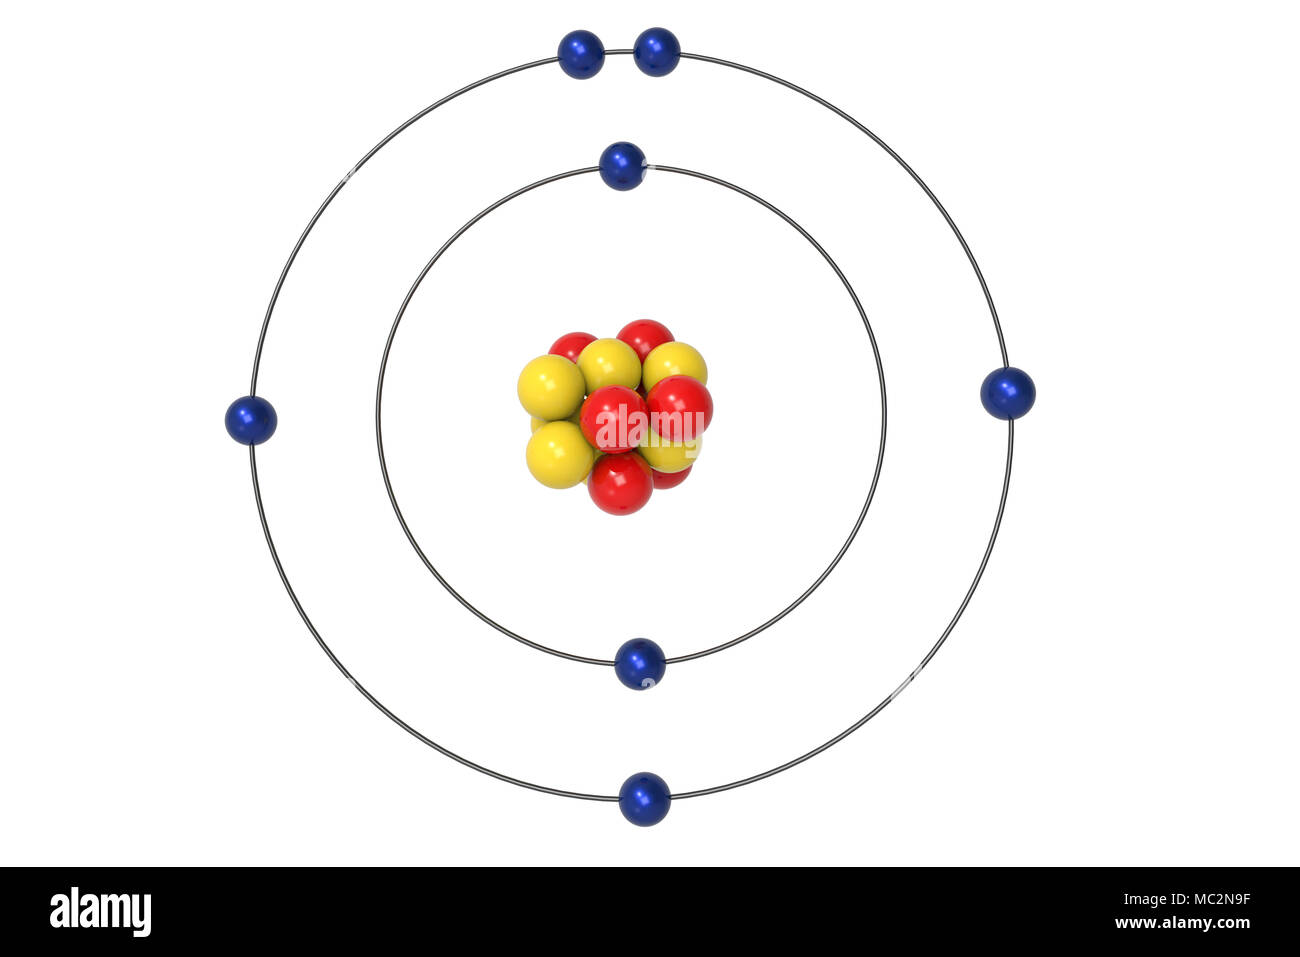 schematic diagram of the nitrogen cycle bohr model stock photos & bohr model stock images - alamy